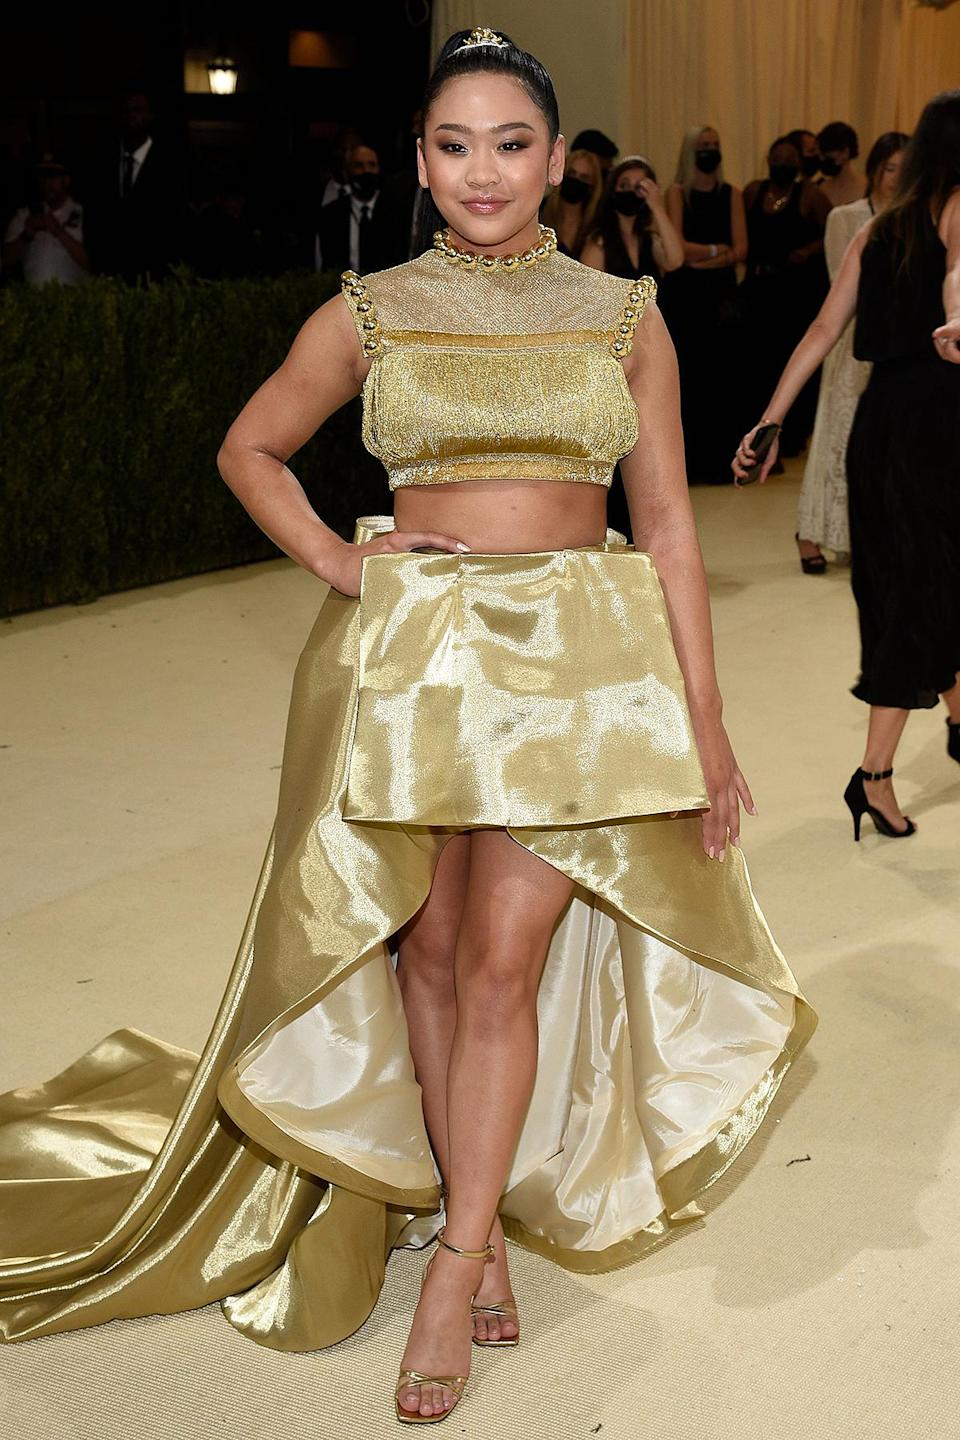 <p>Just like the gold medal she won in Tokyo, gymnast Sunisa Lee was golden on Monday night in a crop top and skirt by Sukeina.</p>